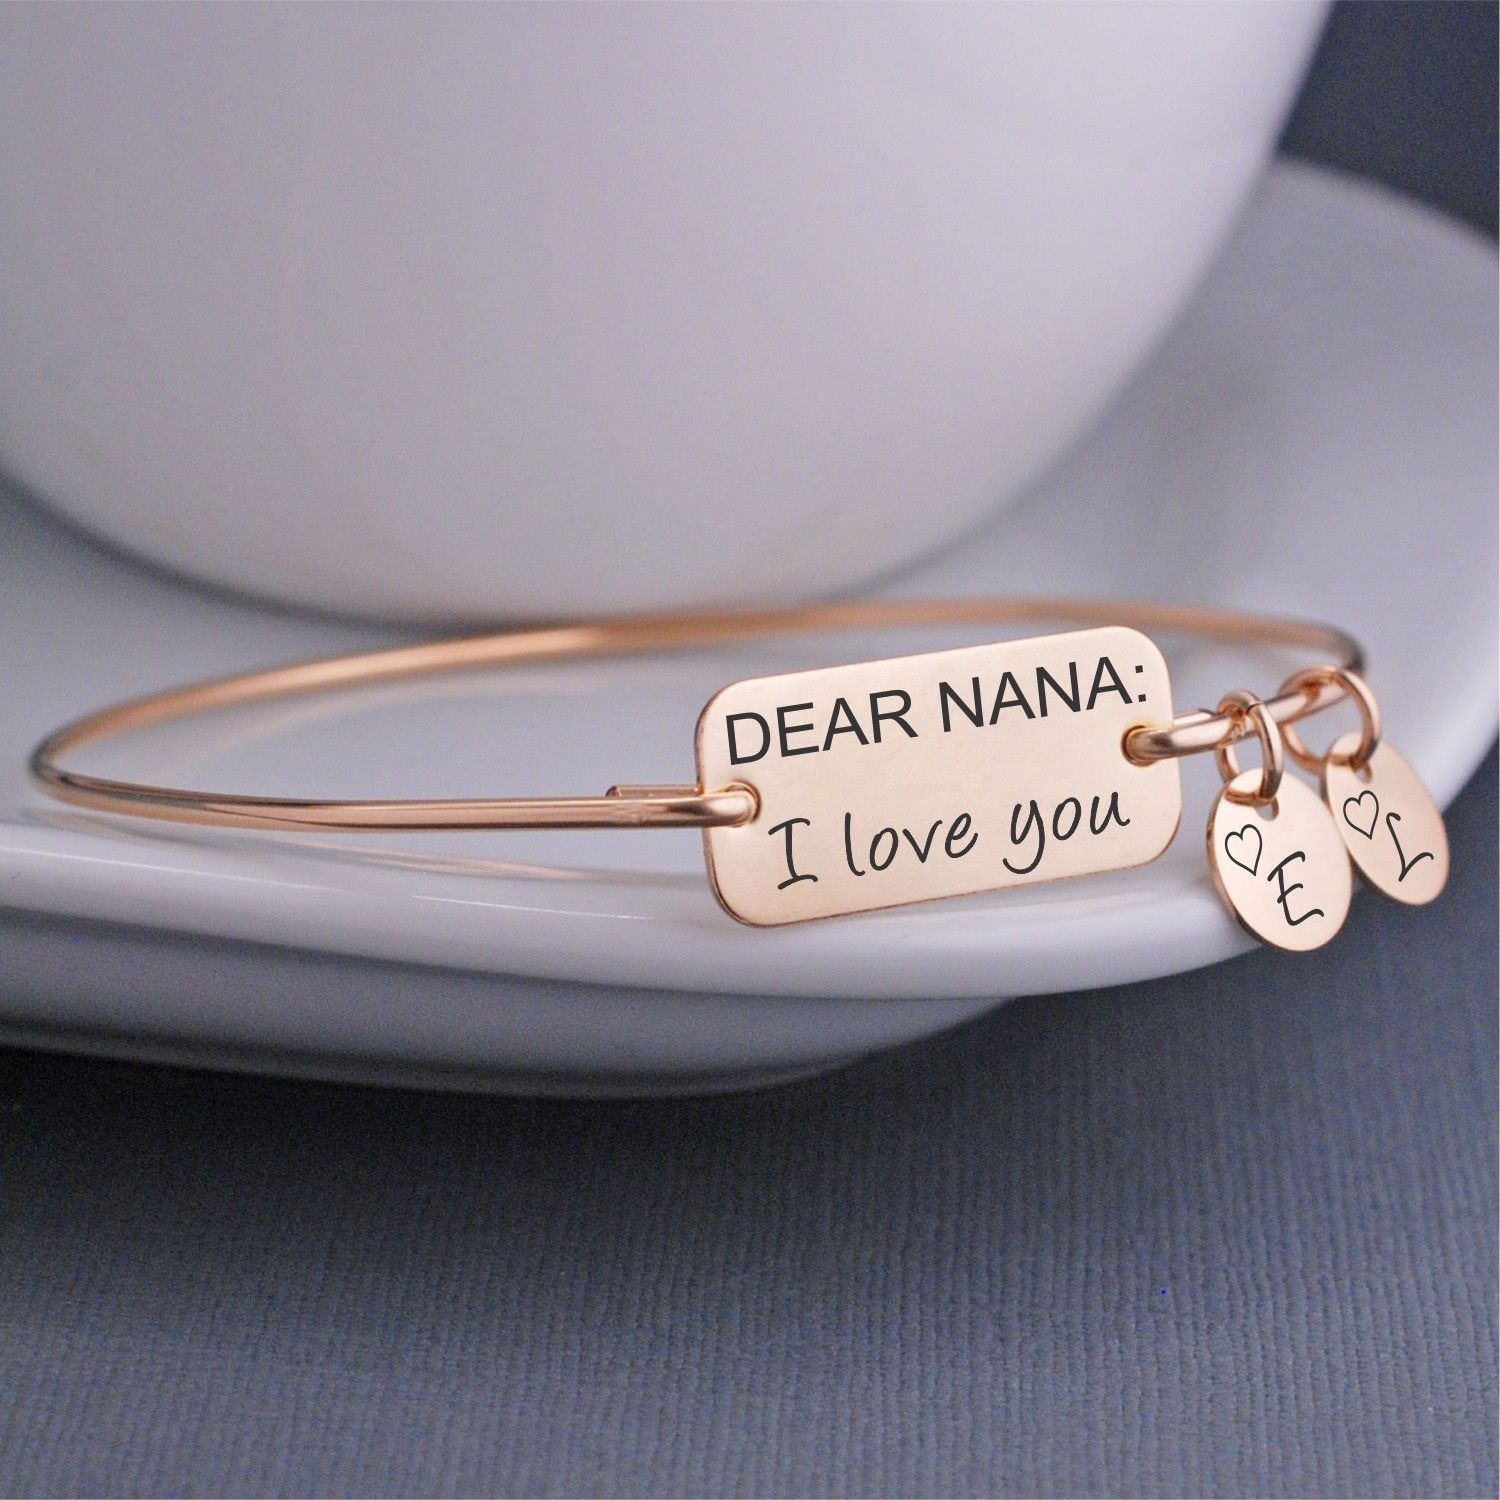 Nana Bracelet Dear I Love You Bangle Gift Mother S Day Jewelry Georgie Designs Personalized